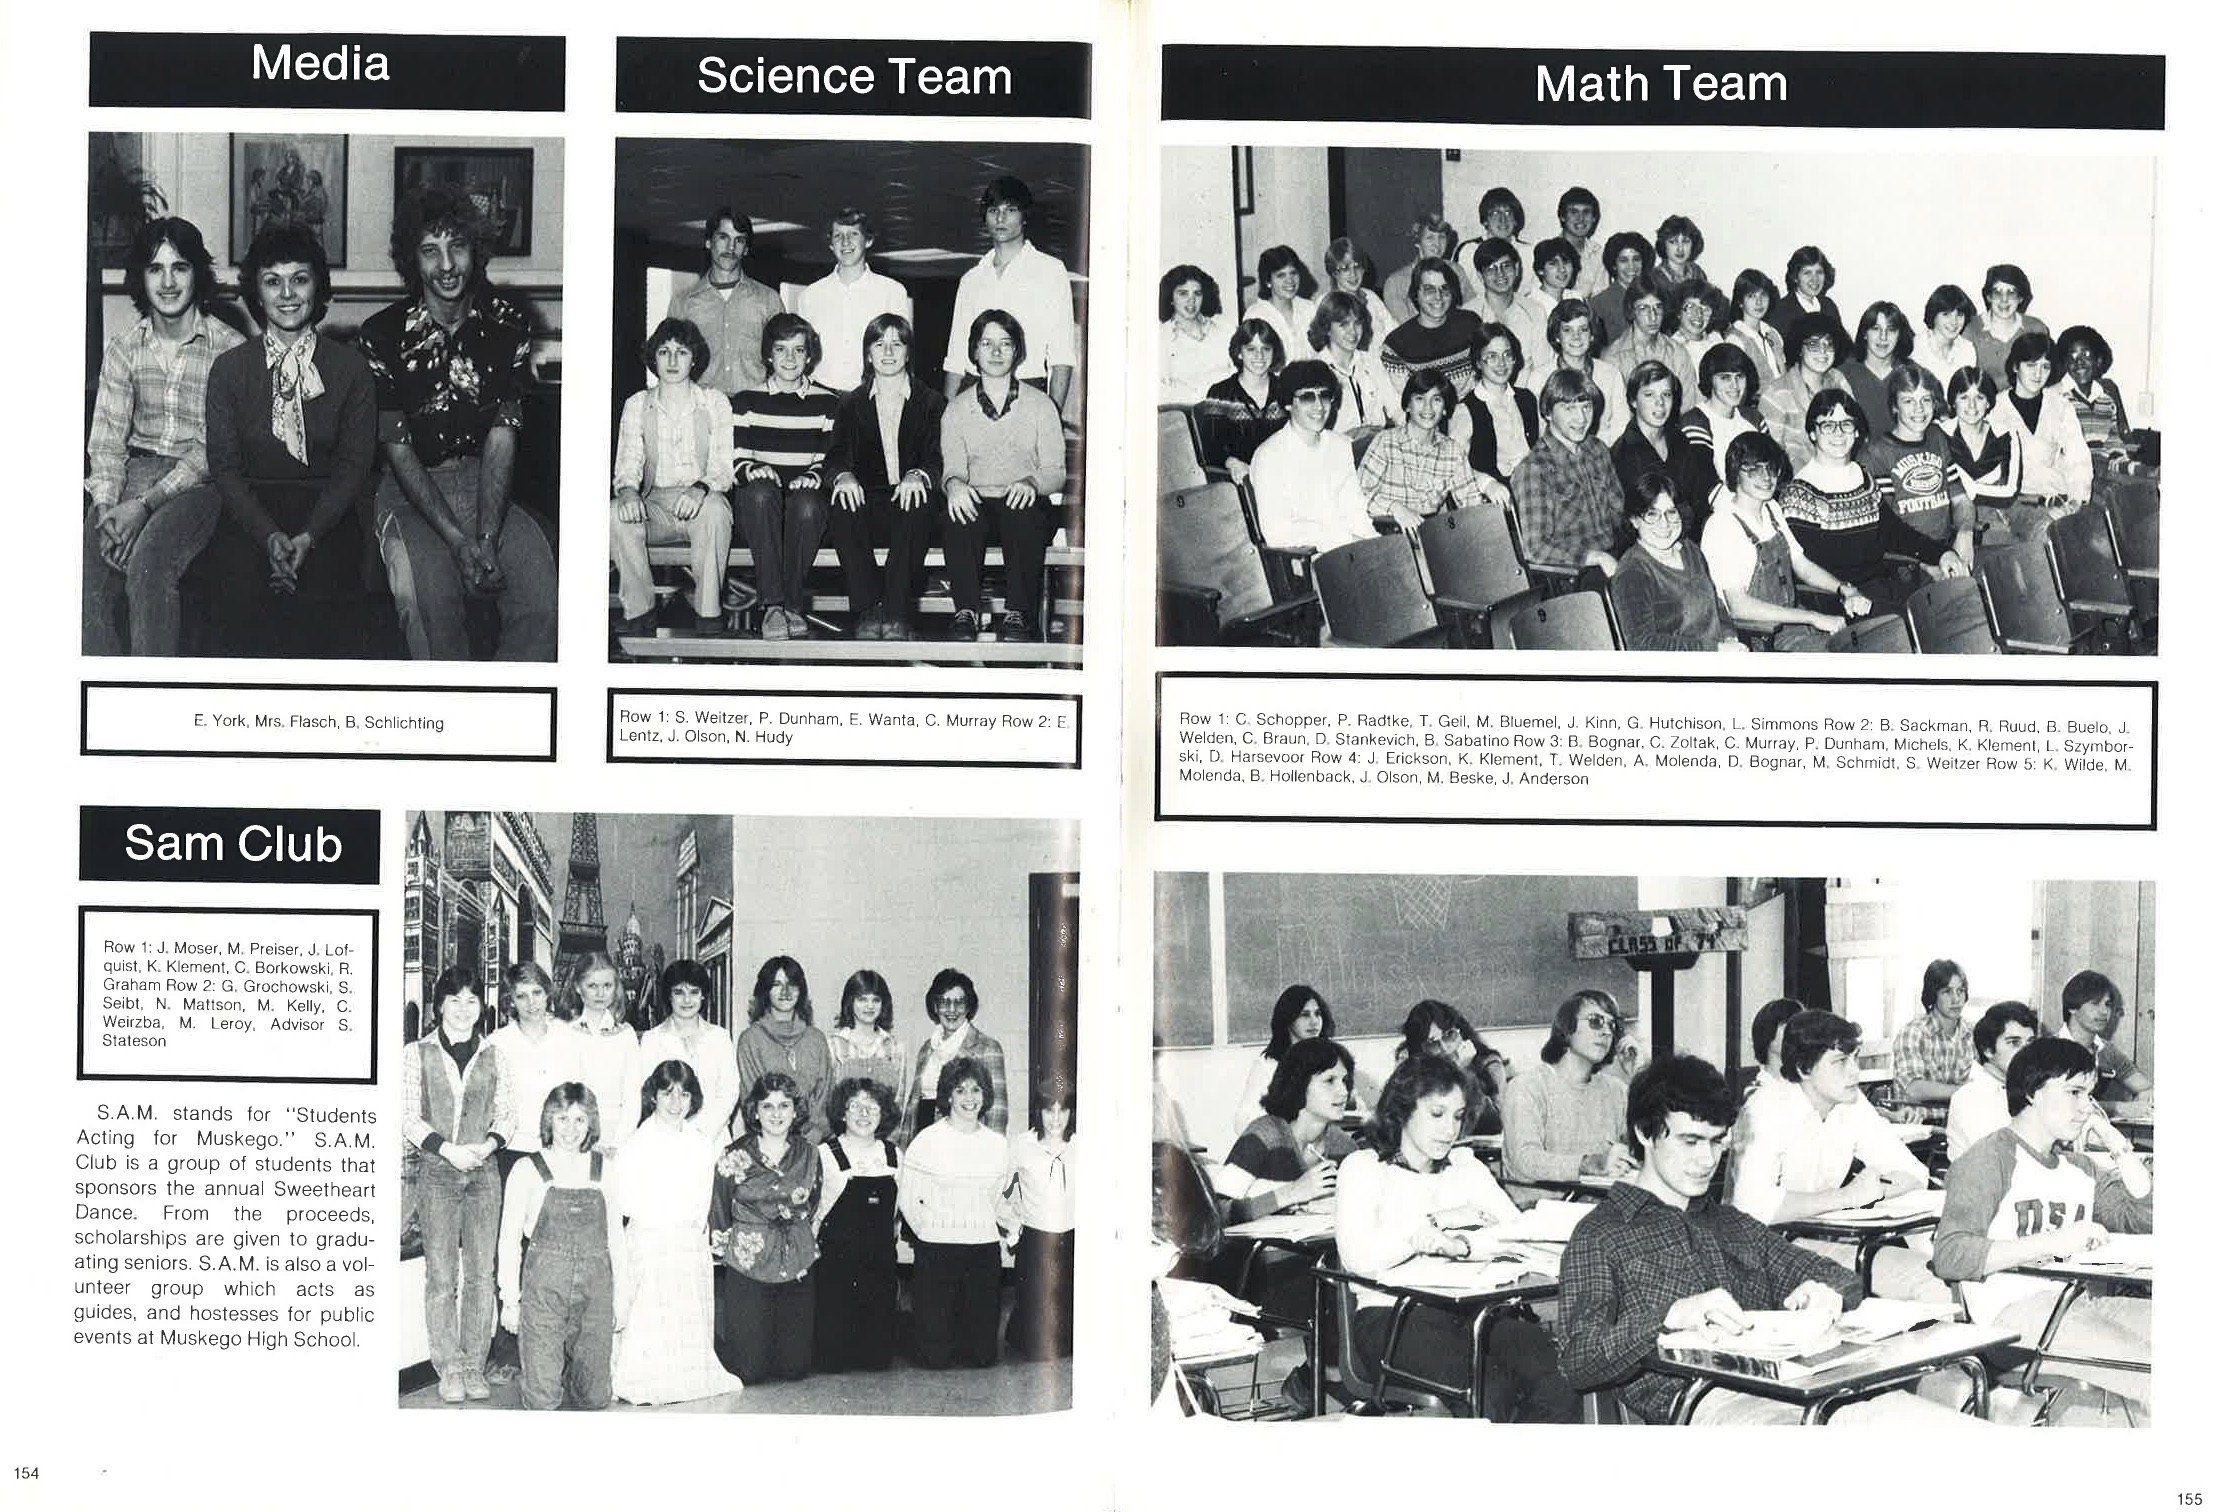 1981_Yearbook_154.jpg